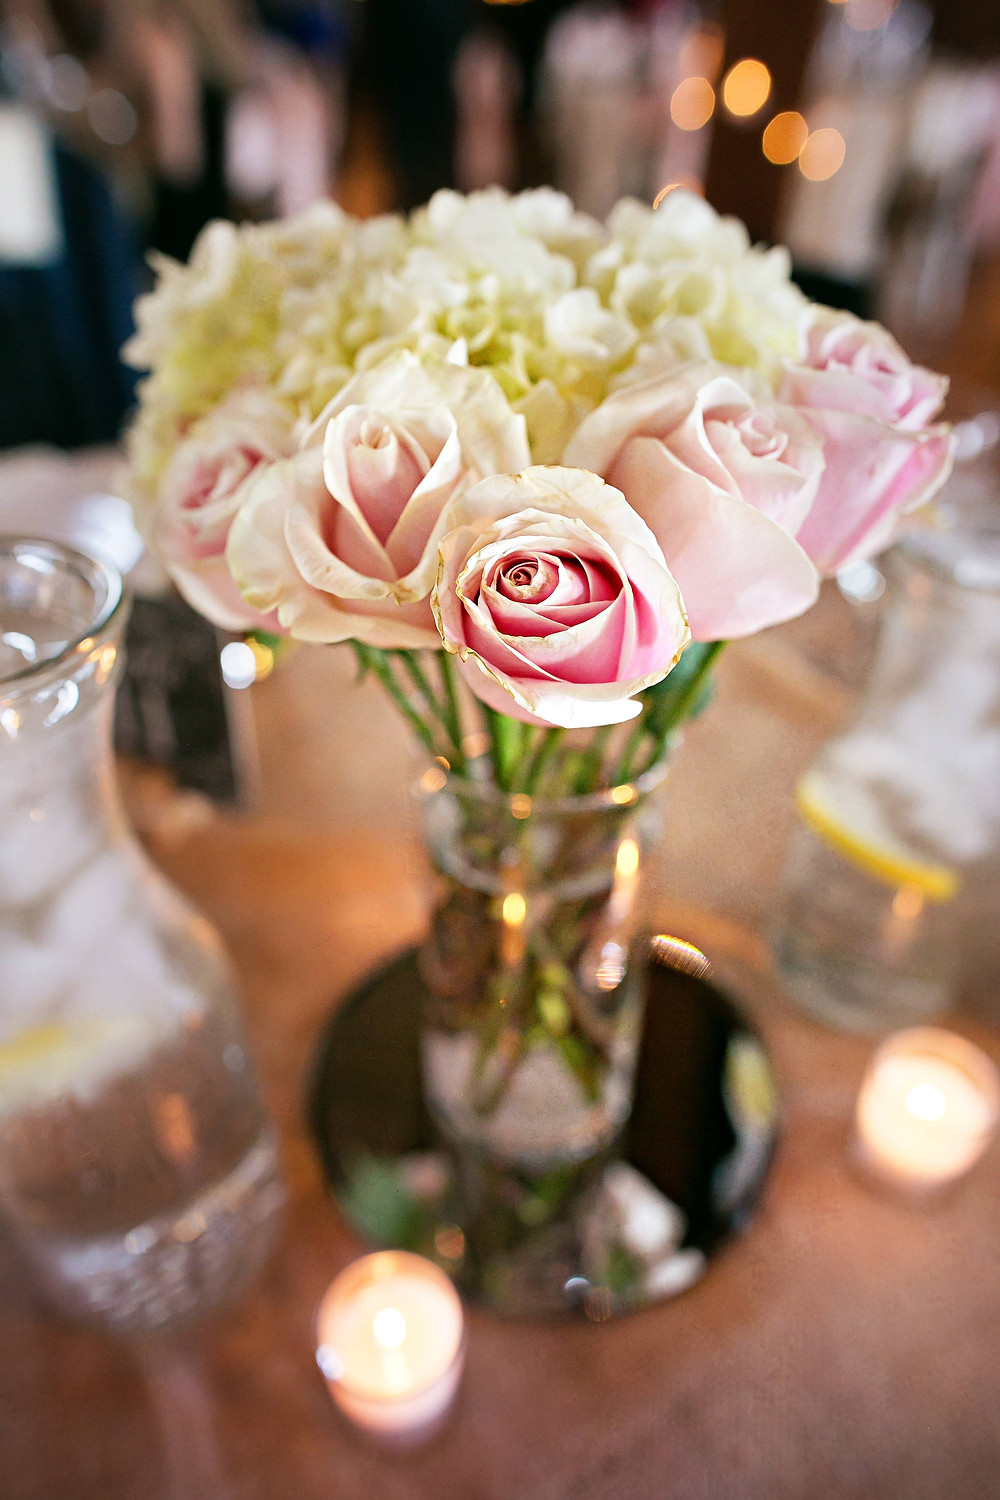 Rustic romantic wedding centerpiece of roses and hydrangeas